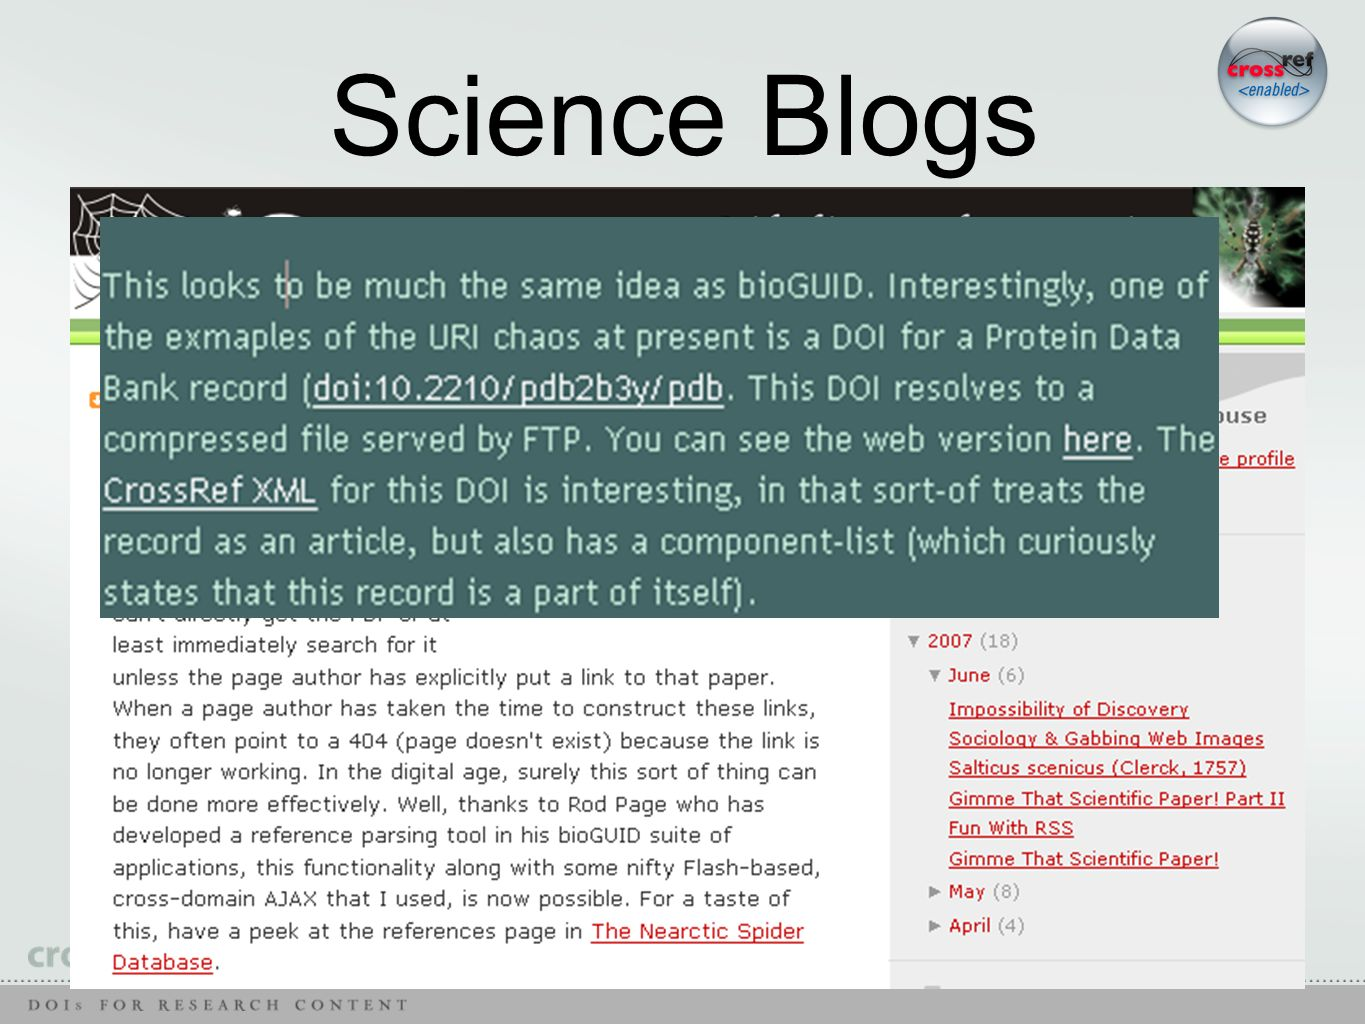 Science Blogs